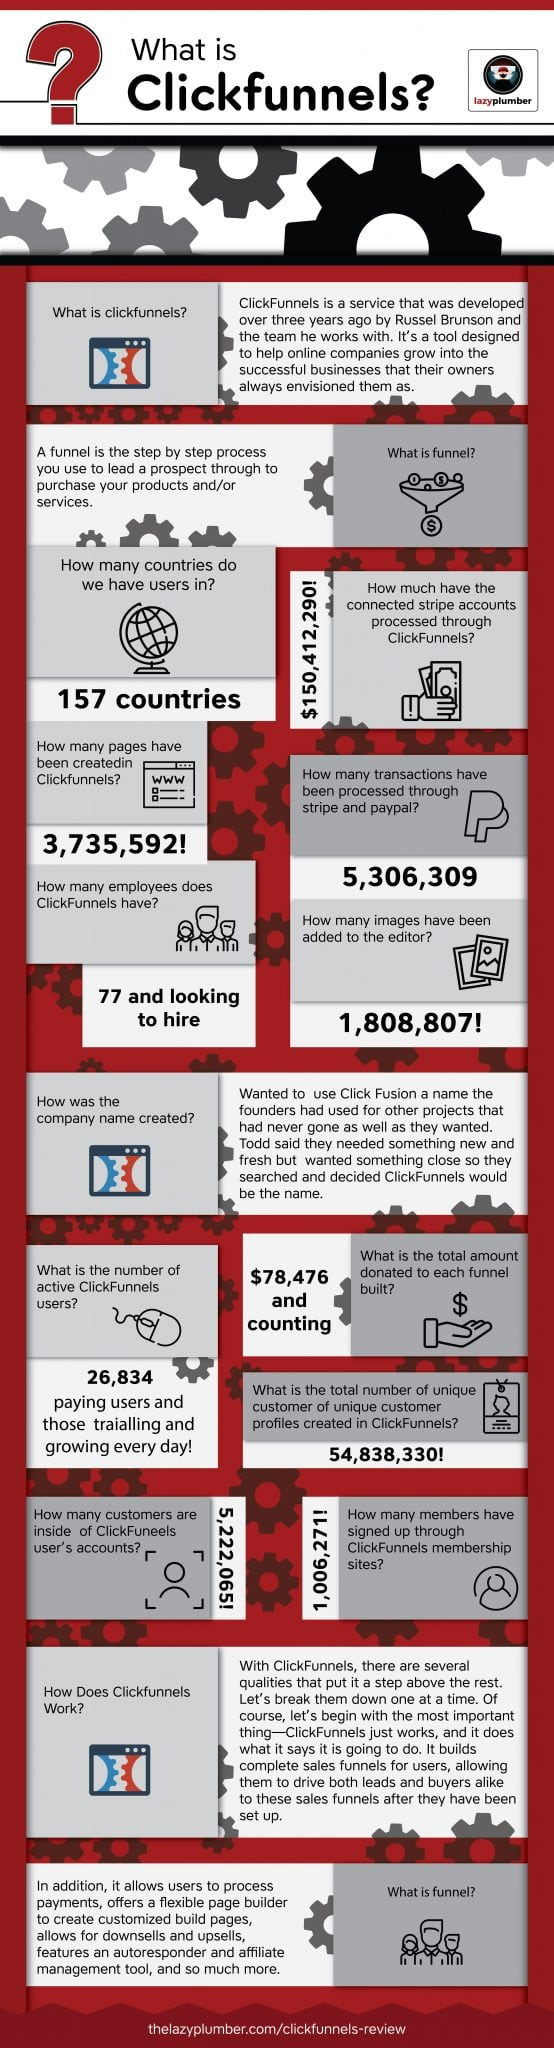 An Infographic of Clickfunnels that explains what it is and what is backpack for clickfunnels